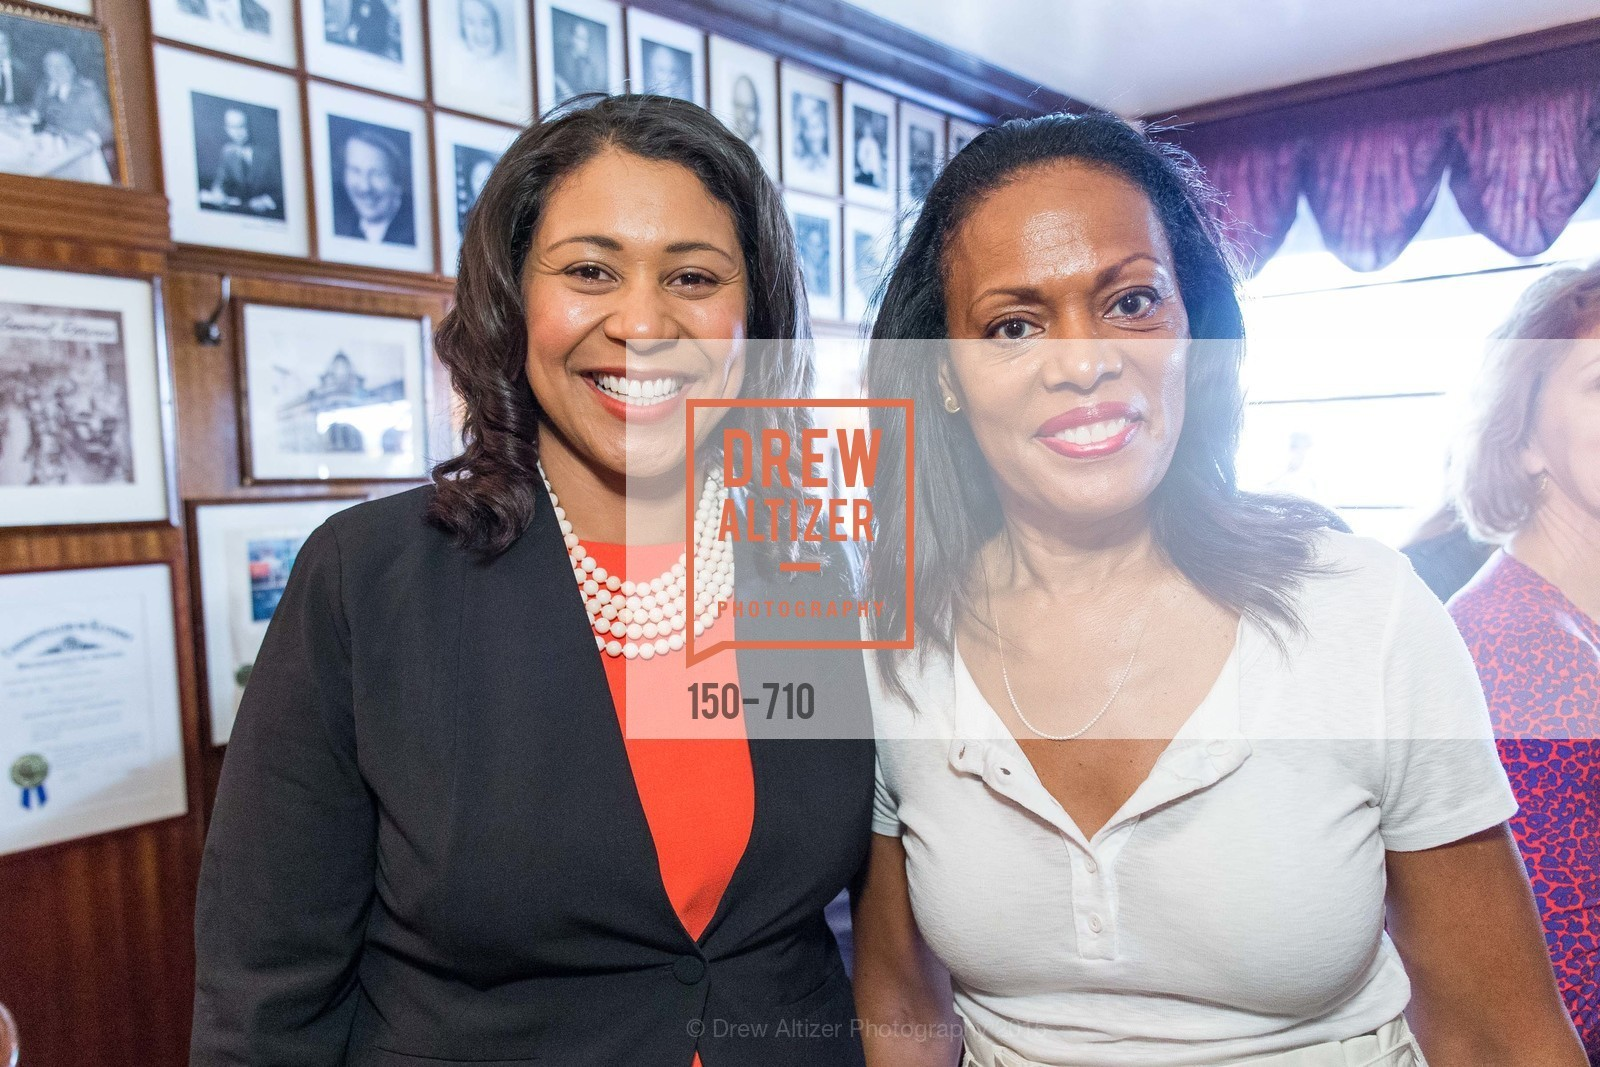 London Breed, Patty-Jo Rutland, 3-RING LUNCH CELEBRATION Honoring RENEL BROOKS-MOON, US, June 8th, 2015,Drew Altizer, Drew Altizer Photography, full-service agency, private events, San Francisco photographer, photographer california